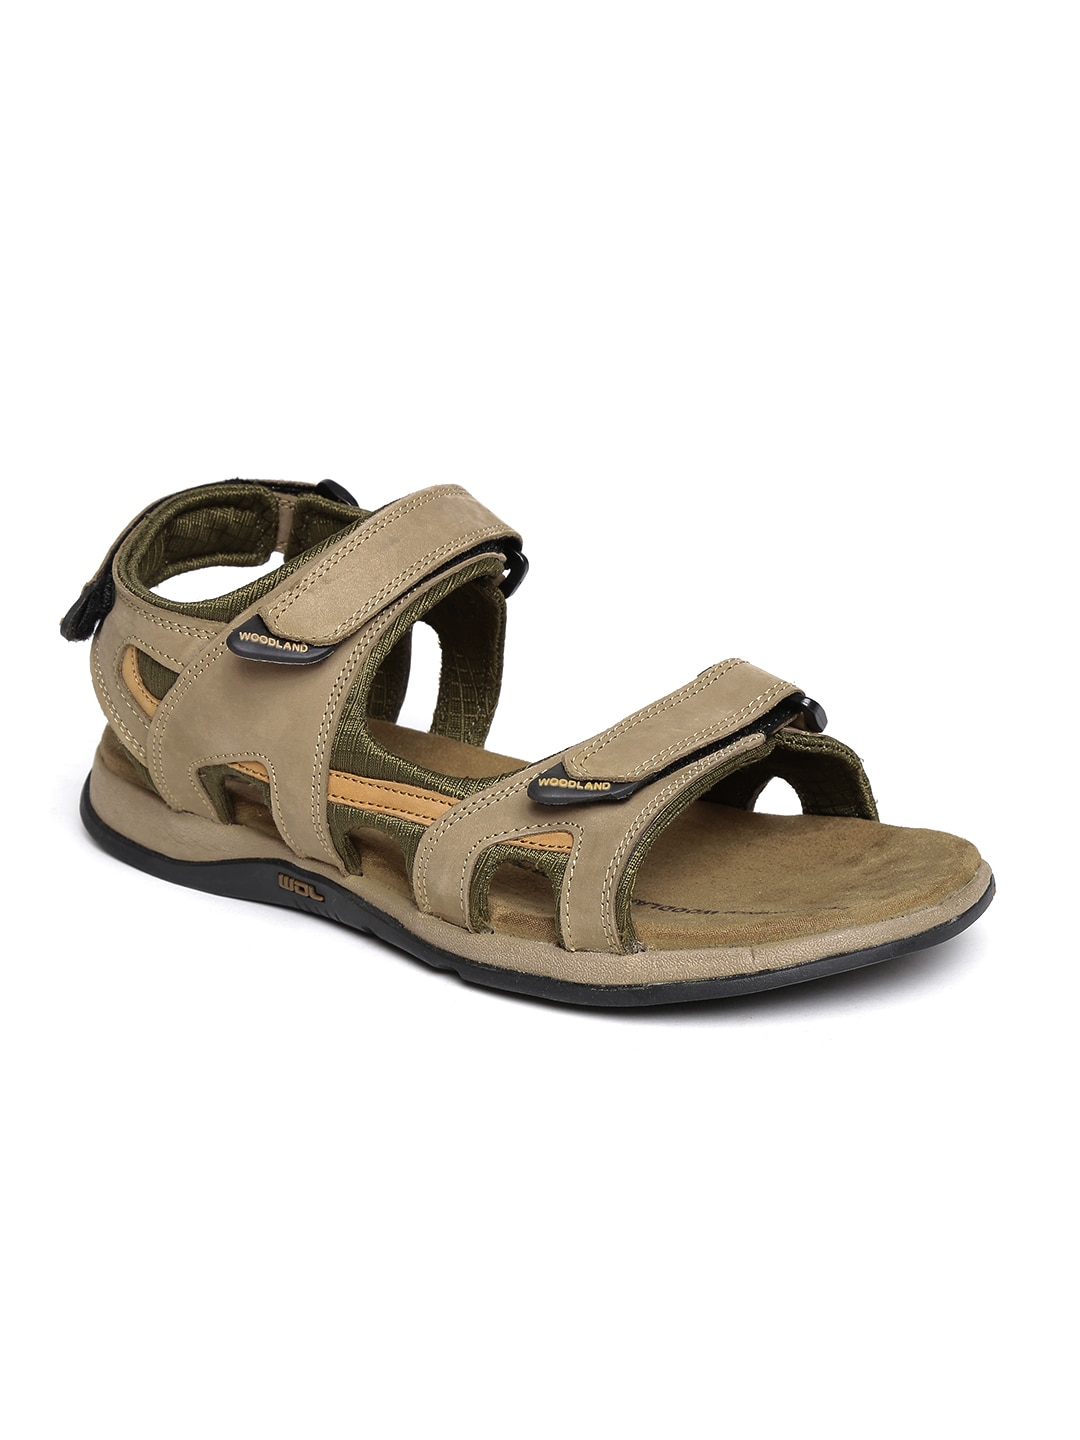 3d61f24b54dd43 Sandal Thermal Bottoms - Buy Sandal Thermal Bottoms online in India